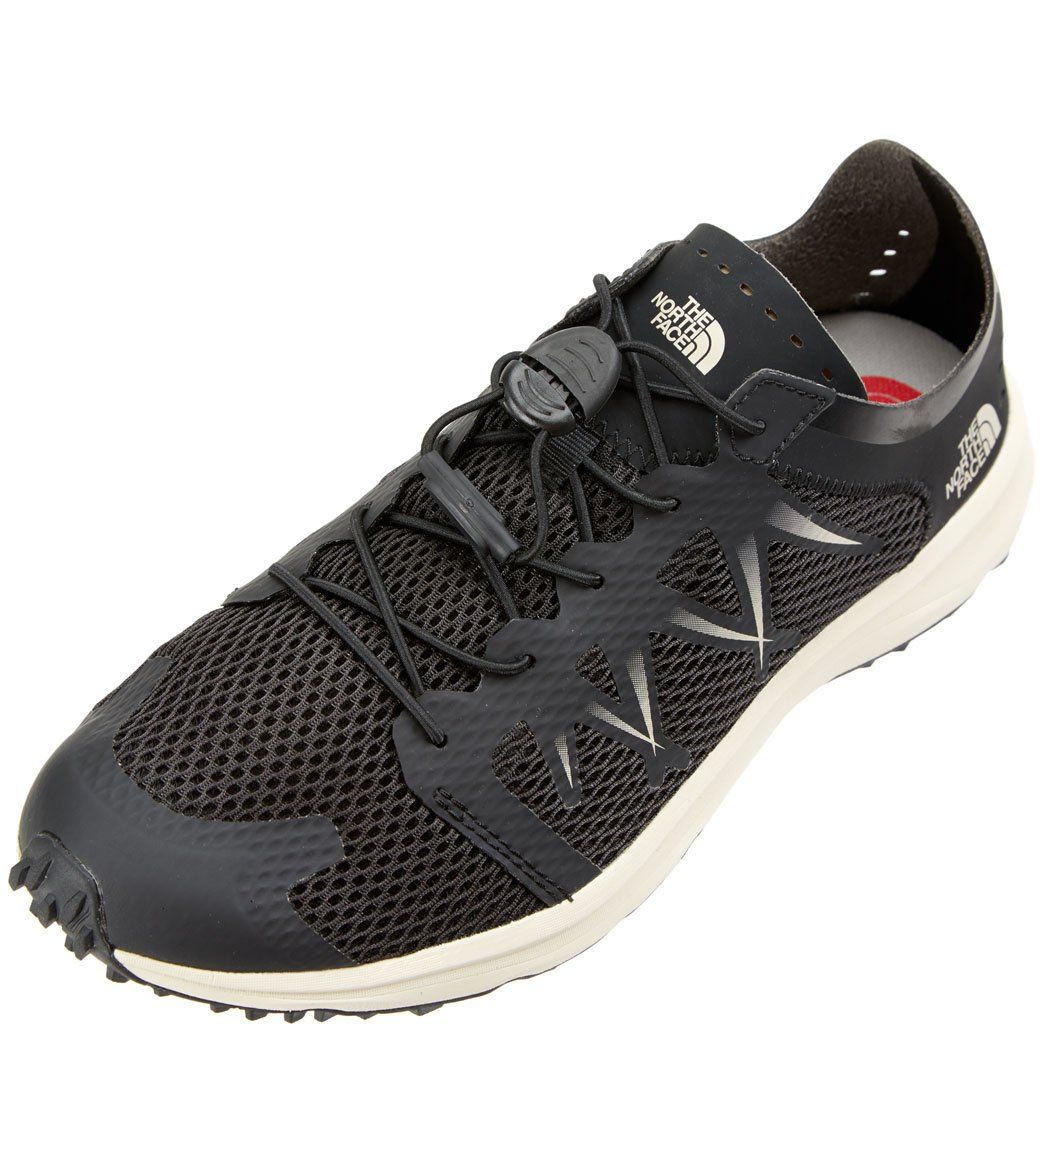 46de56a3bdbf The North Face Women s Litewave Flow Lace Water Shoe at SwimOutlet.com -  Free Shipping